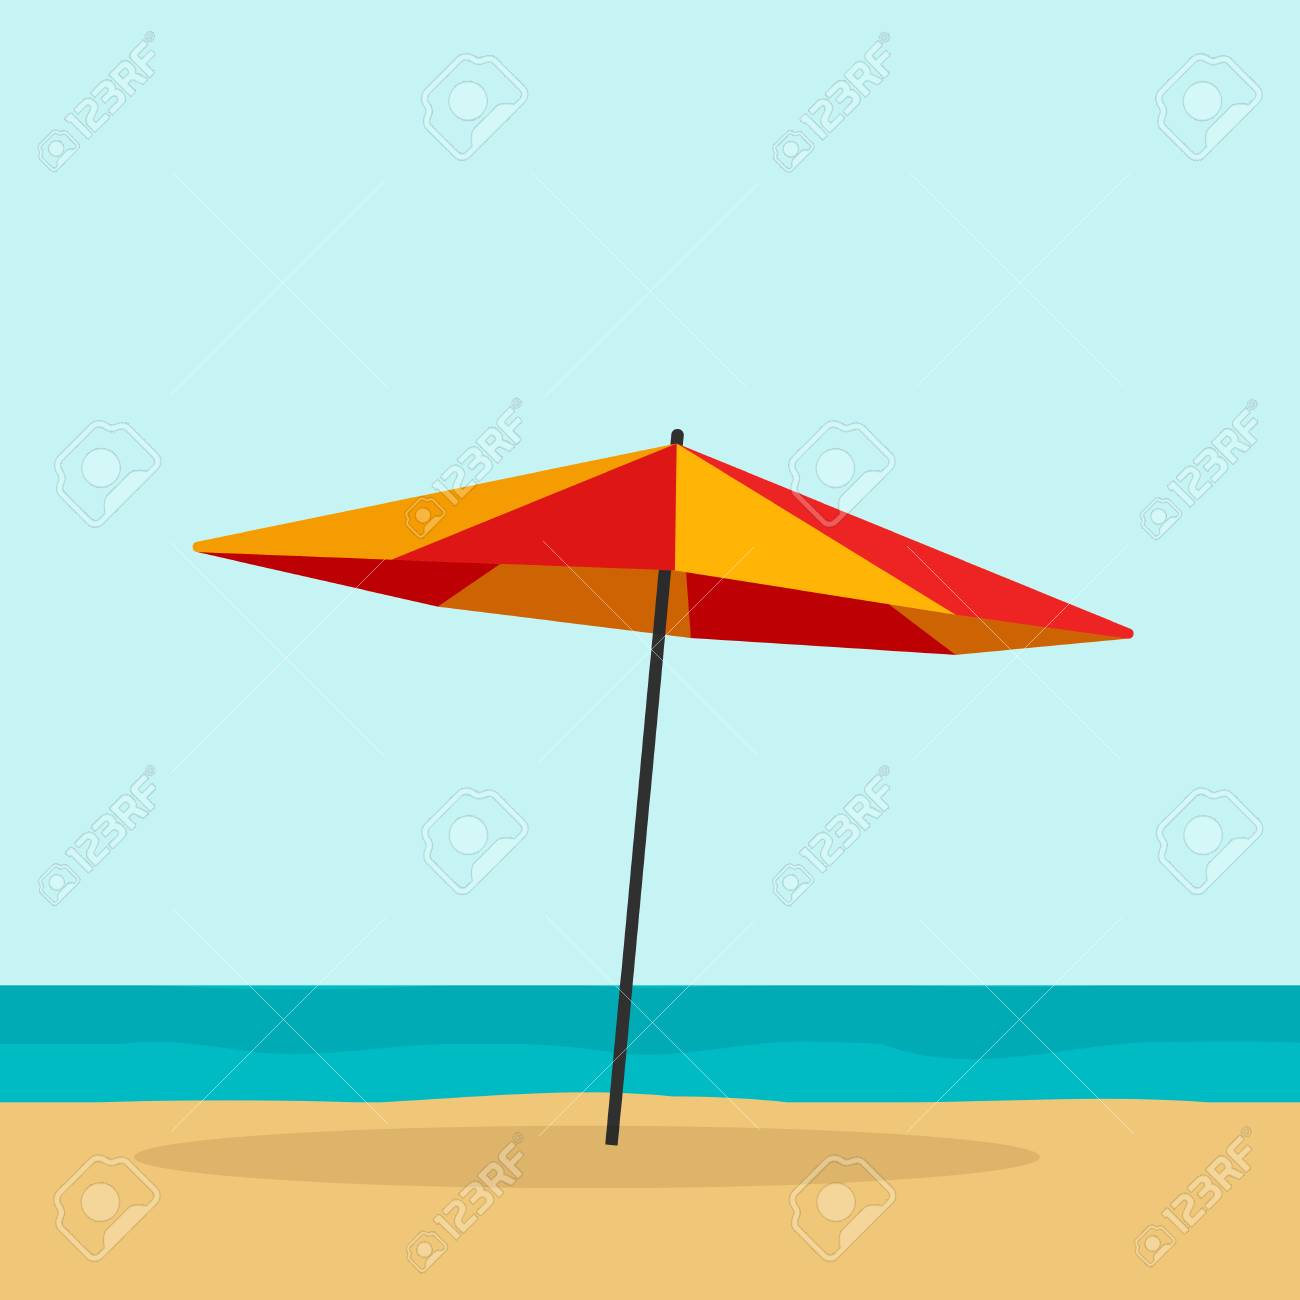 Dessin Parasol parasol illustration vectorielle isolé, dessin animé plat orange